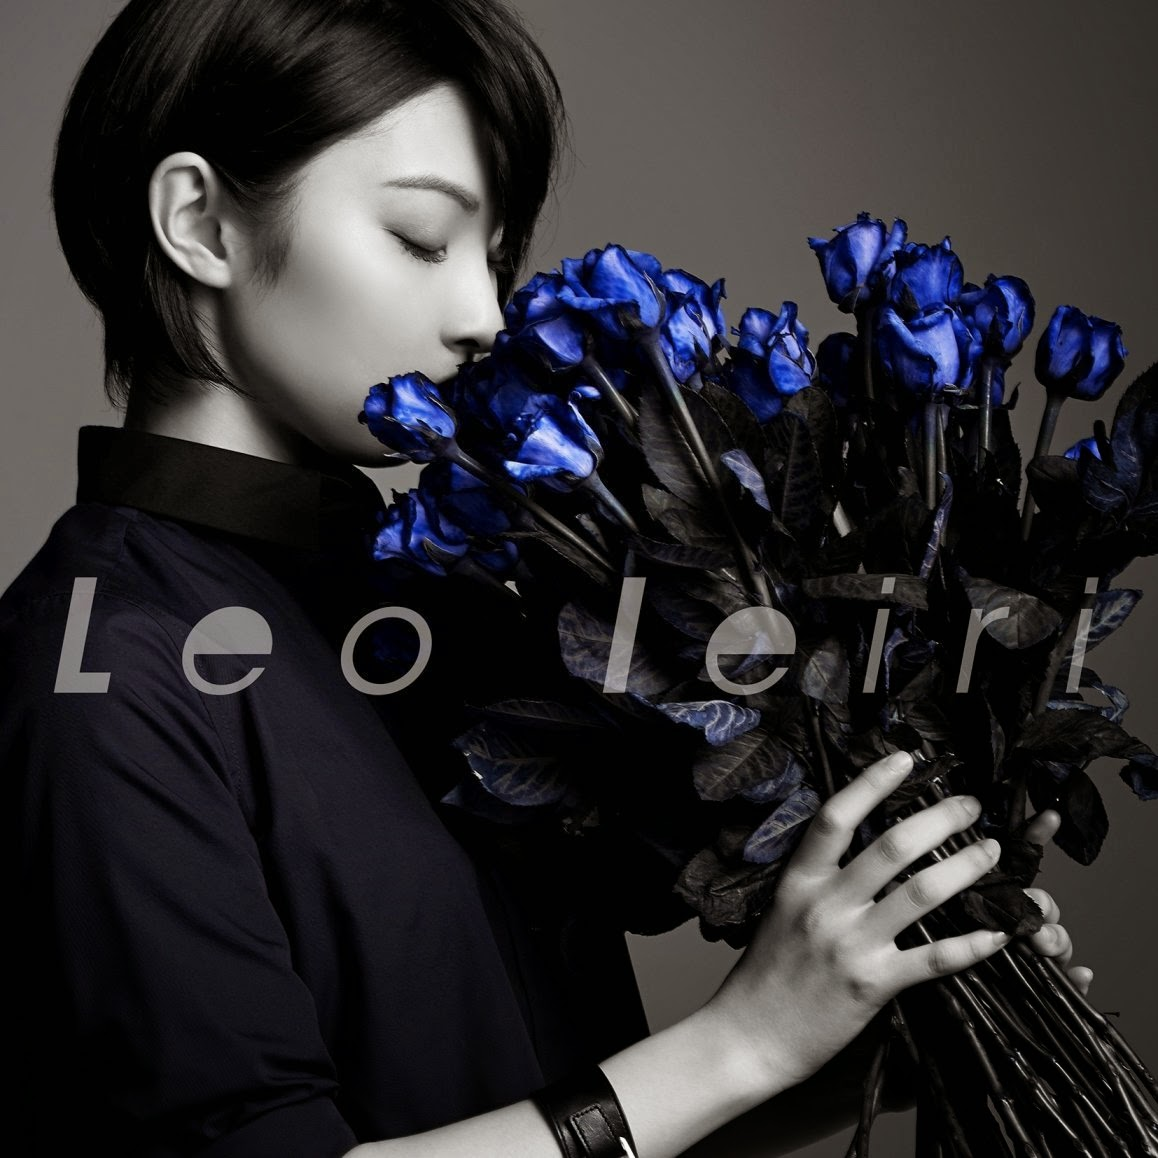 Ieiri Leo 家入レオ Silly ジャケット Cover Limited A